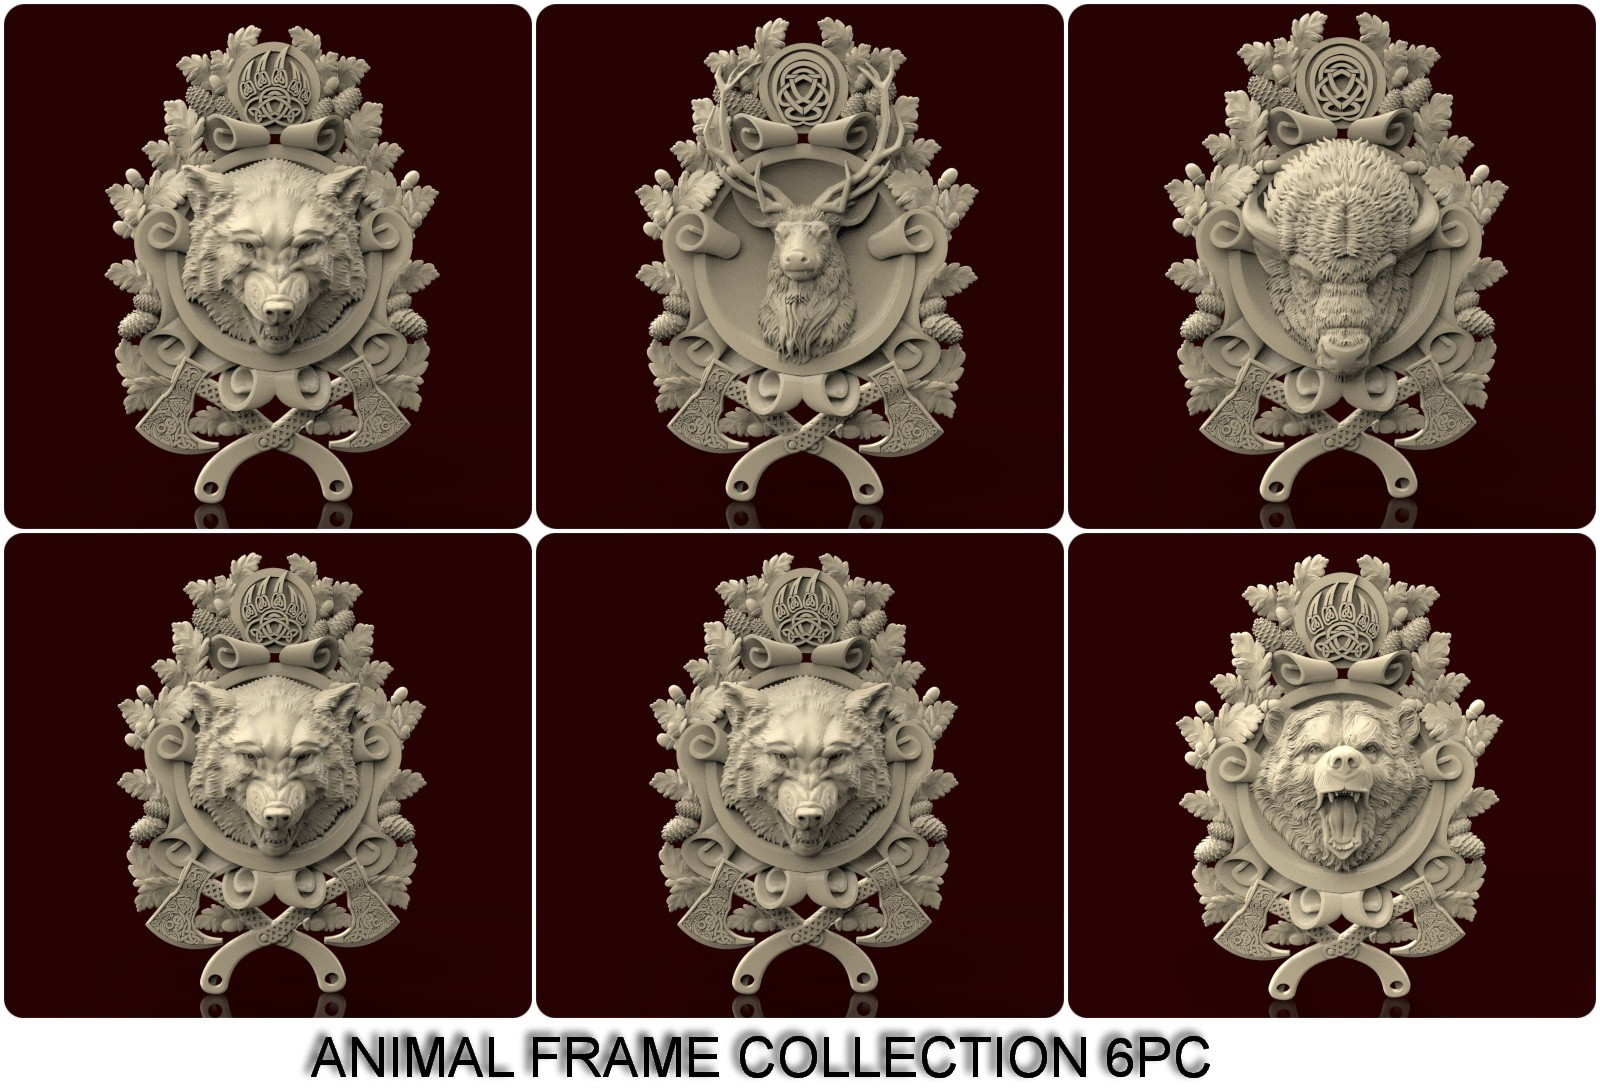 CNC G022 (Animal Frame Collection) 6pc 3D STL Model